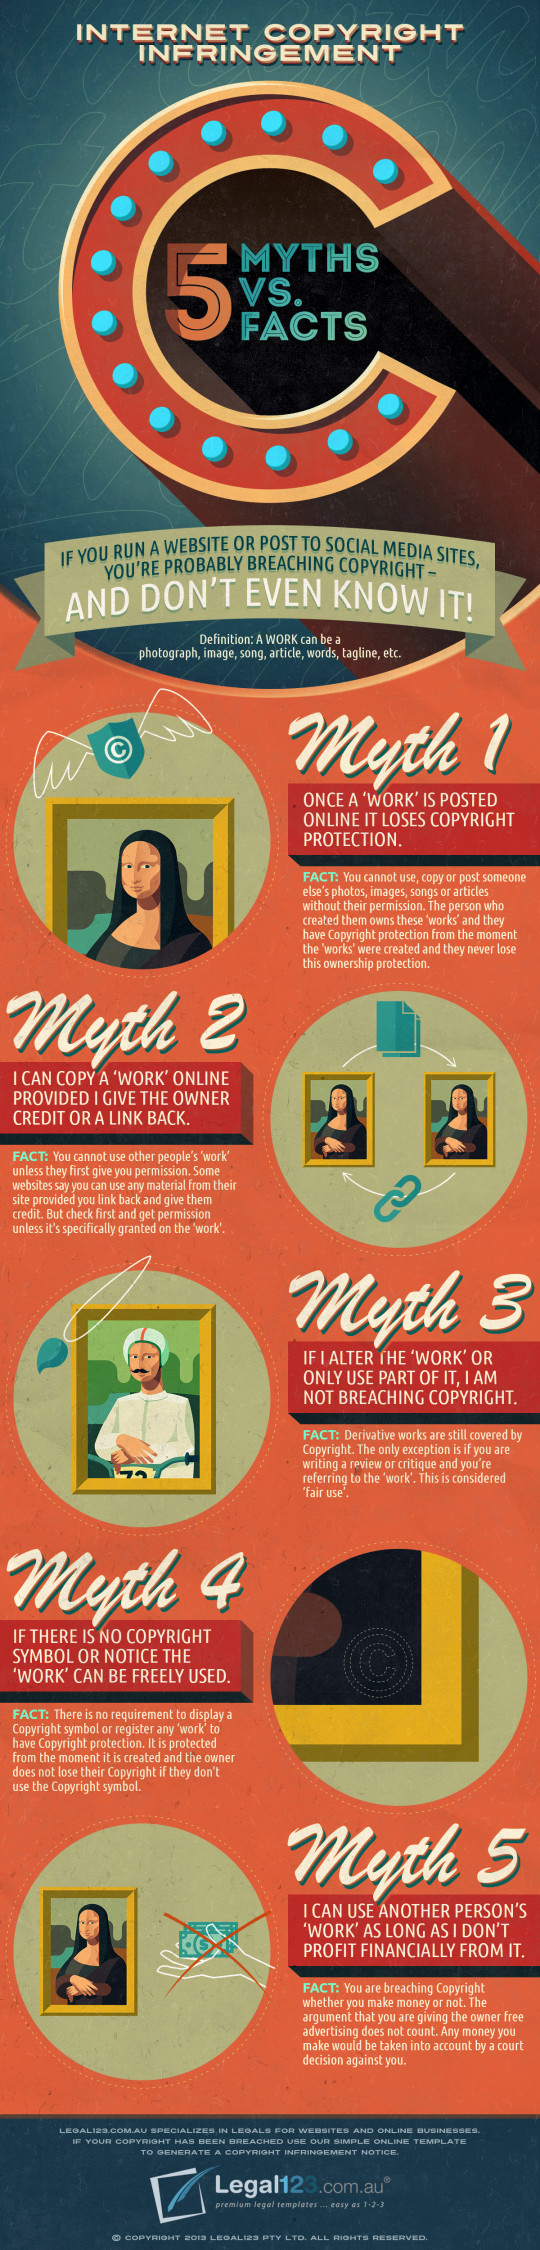 Copyright Infringement: 5 Myths vs Facts